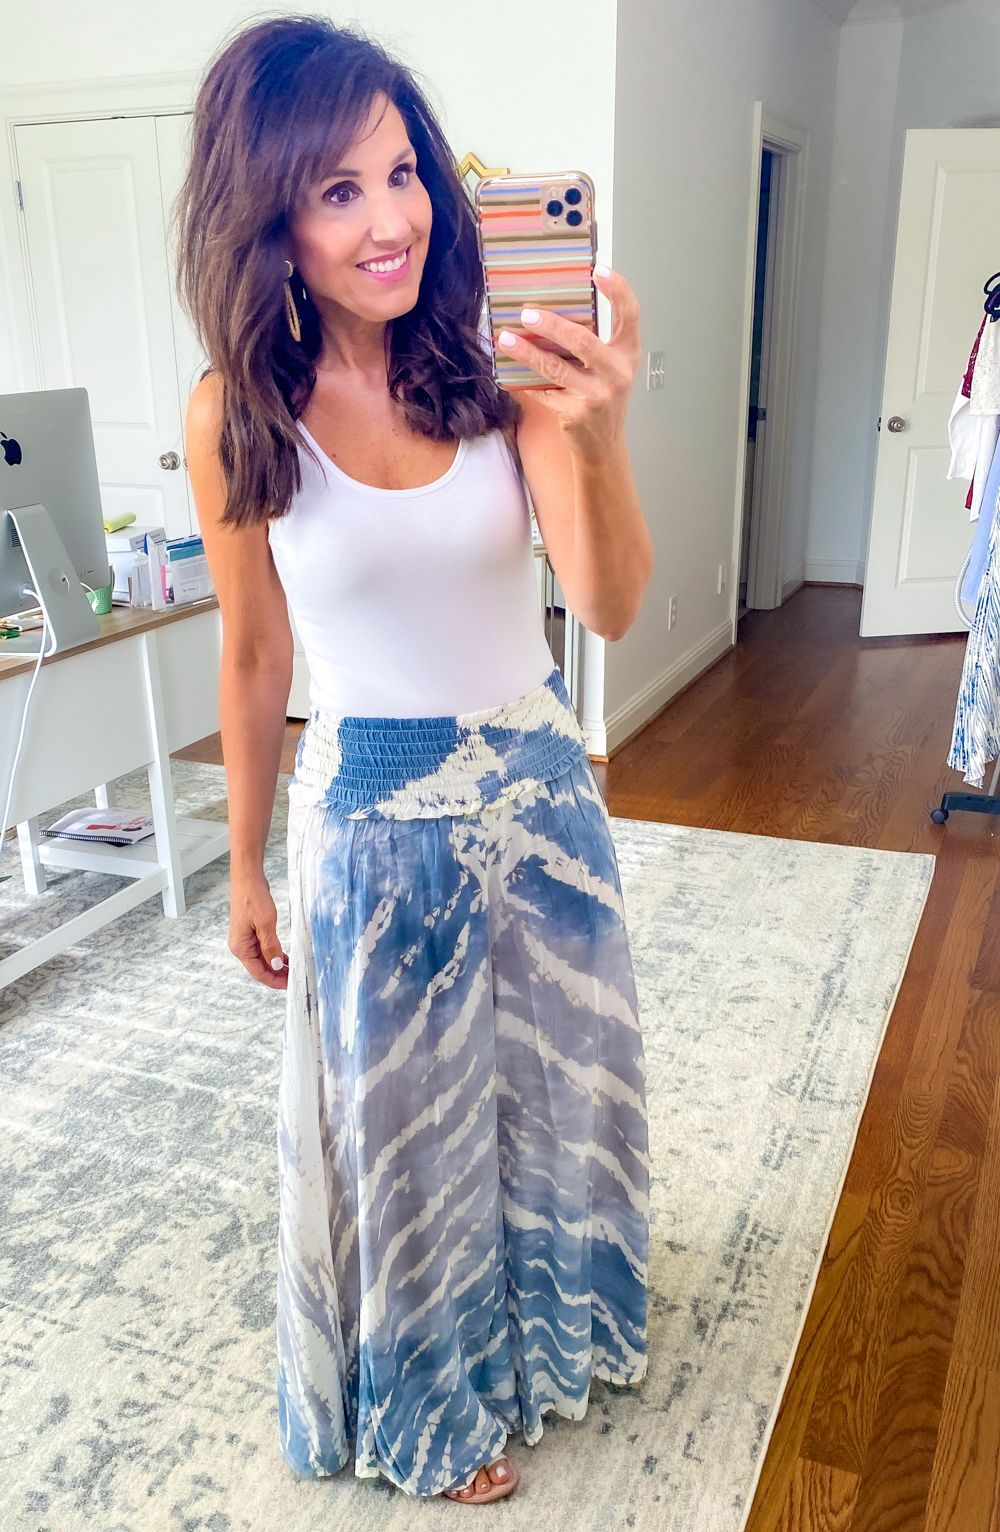 Whether you are planning a beach vacation or just need some cute outfits for